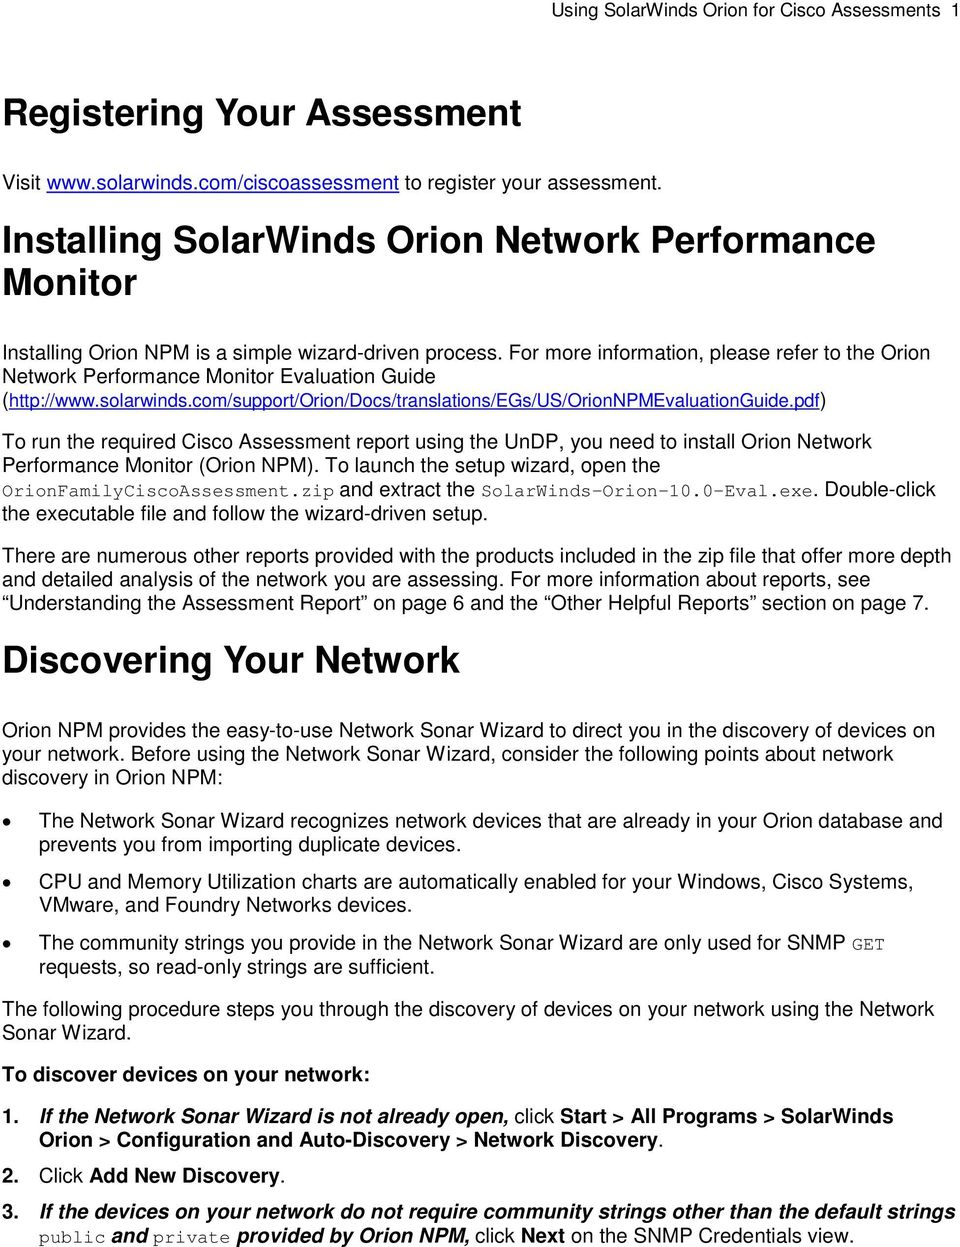 For more information, please refer to the Orion Network Performance Monitor Evaluation Guide (http://www.solarwinds.com/support/orion/docs/translations/egs/us/orionnpmevaluationguide.